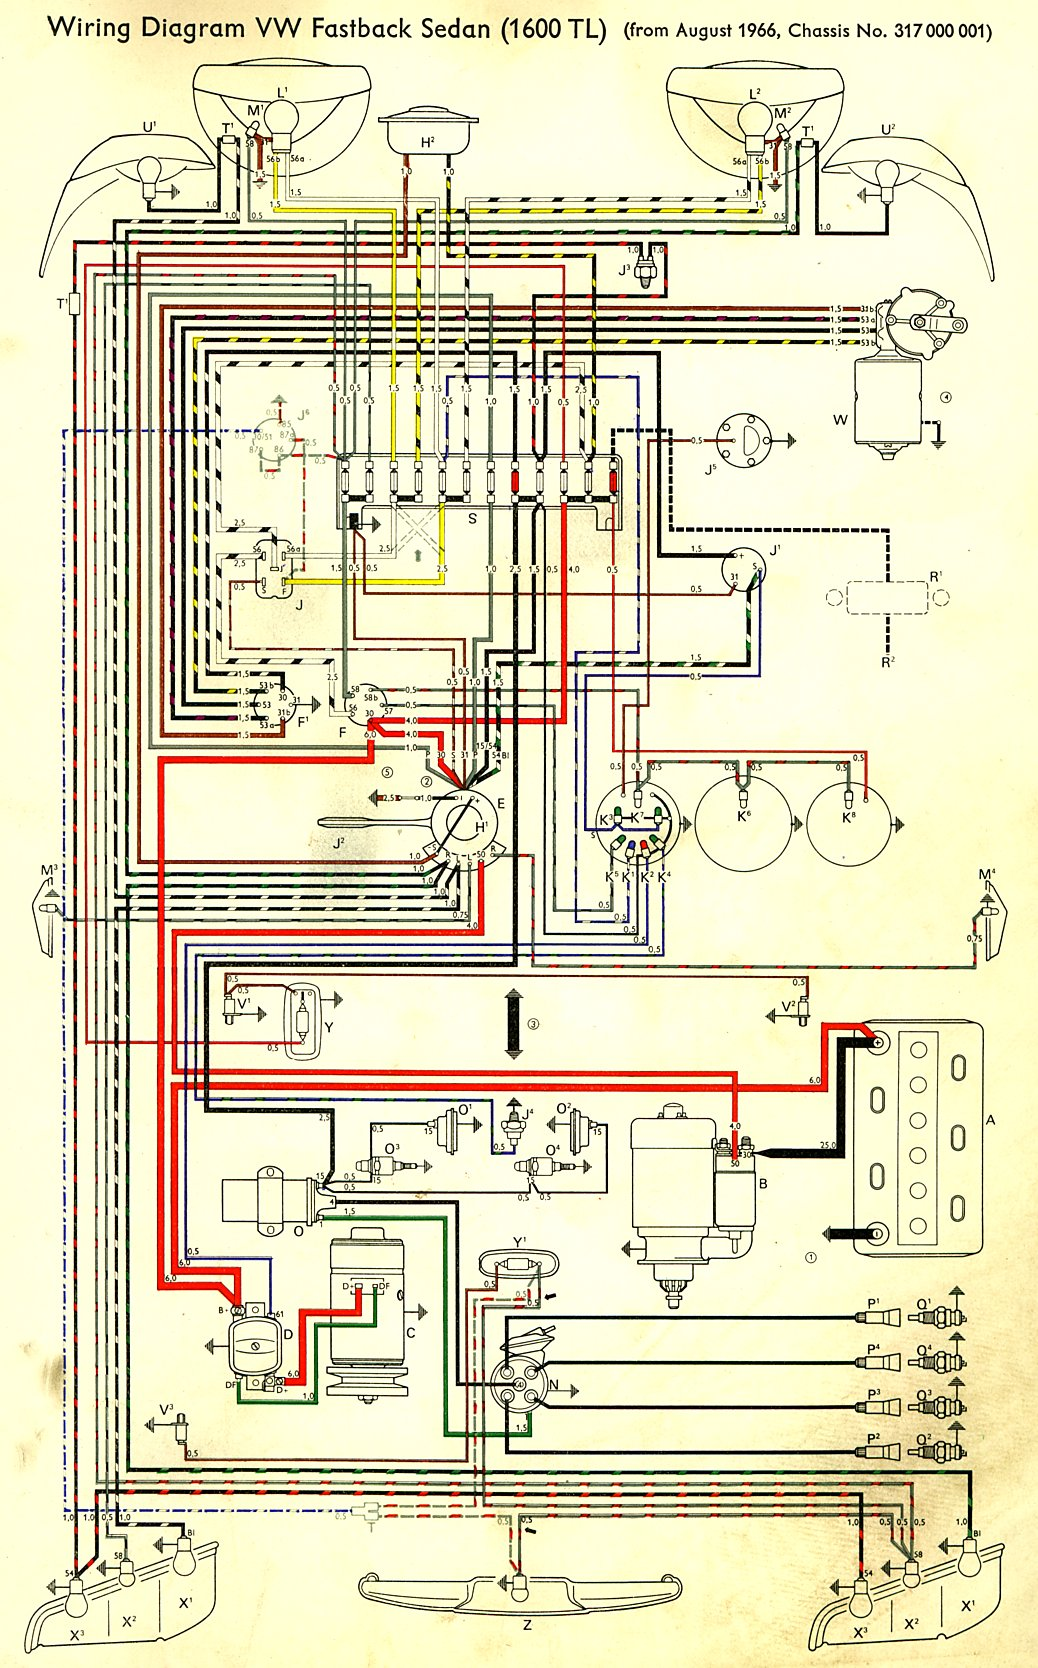 type3_1600TL_67 vw bus wiring diagram 1965 vw bus wiring diagram \u2022 wiring diagrams VW Alternator Hook Up at reclaimingppi.co